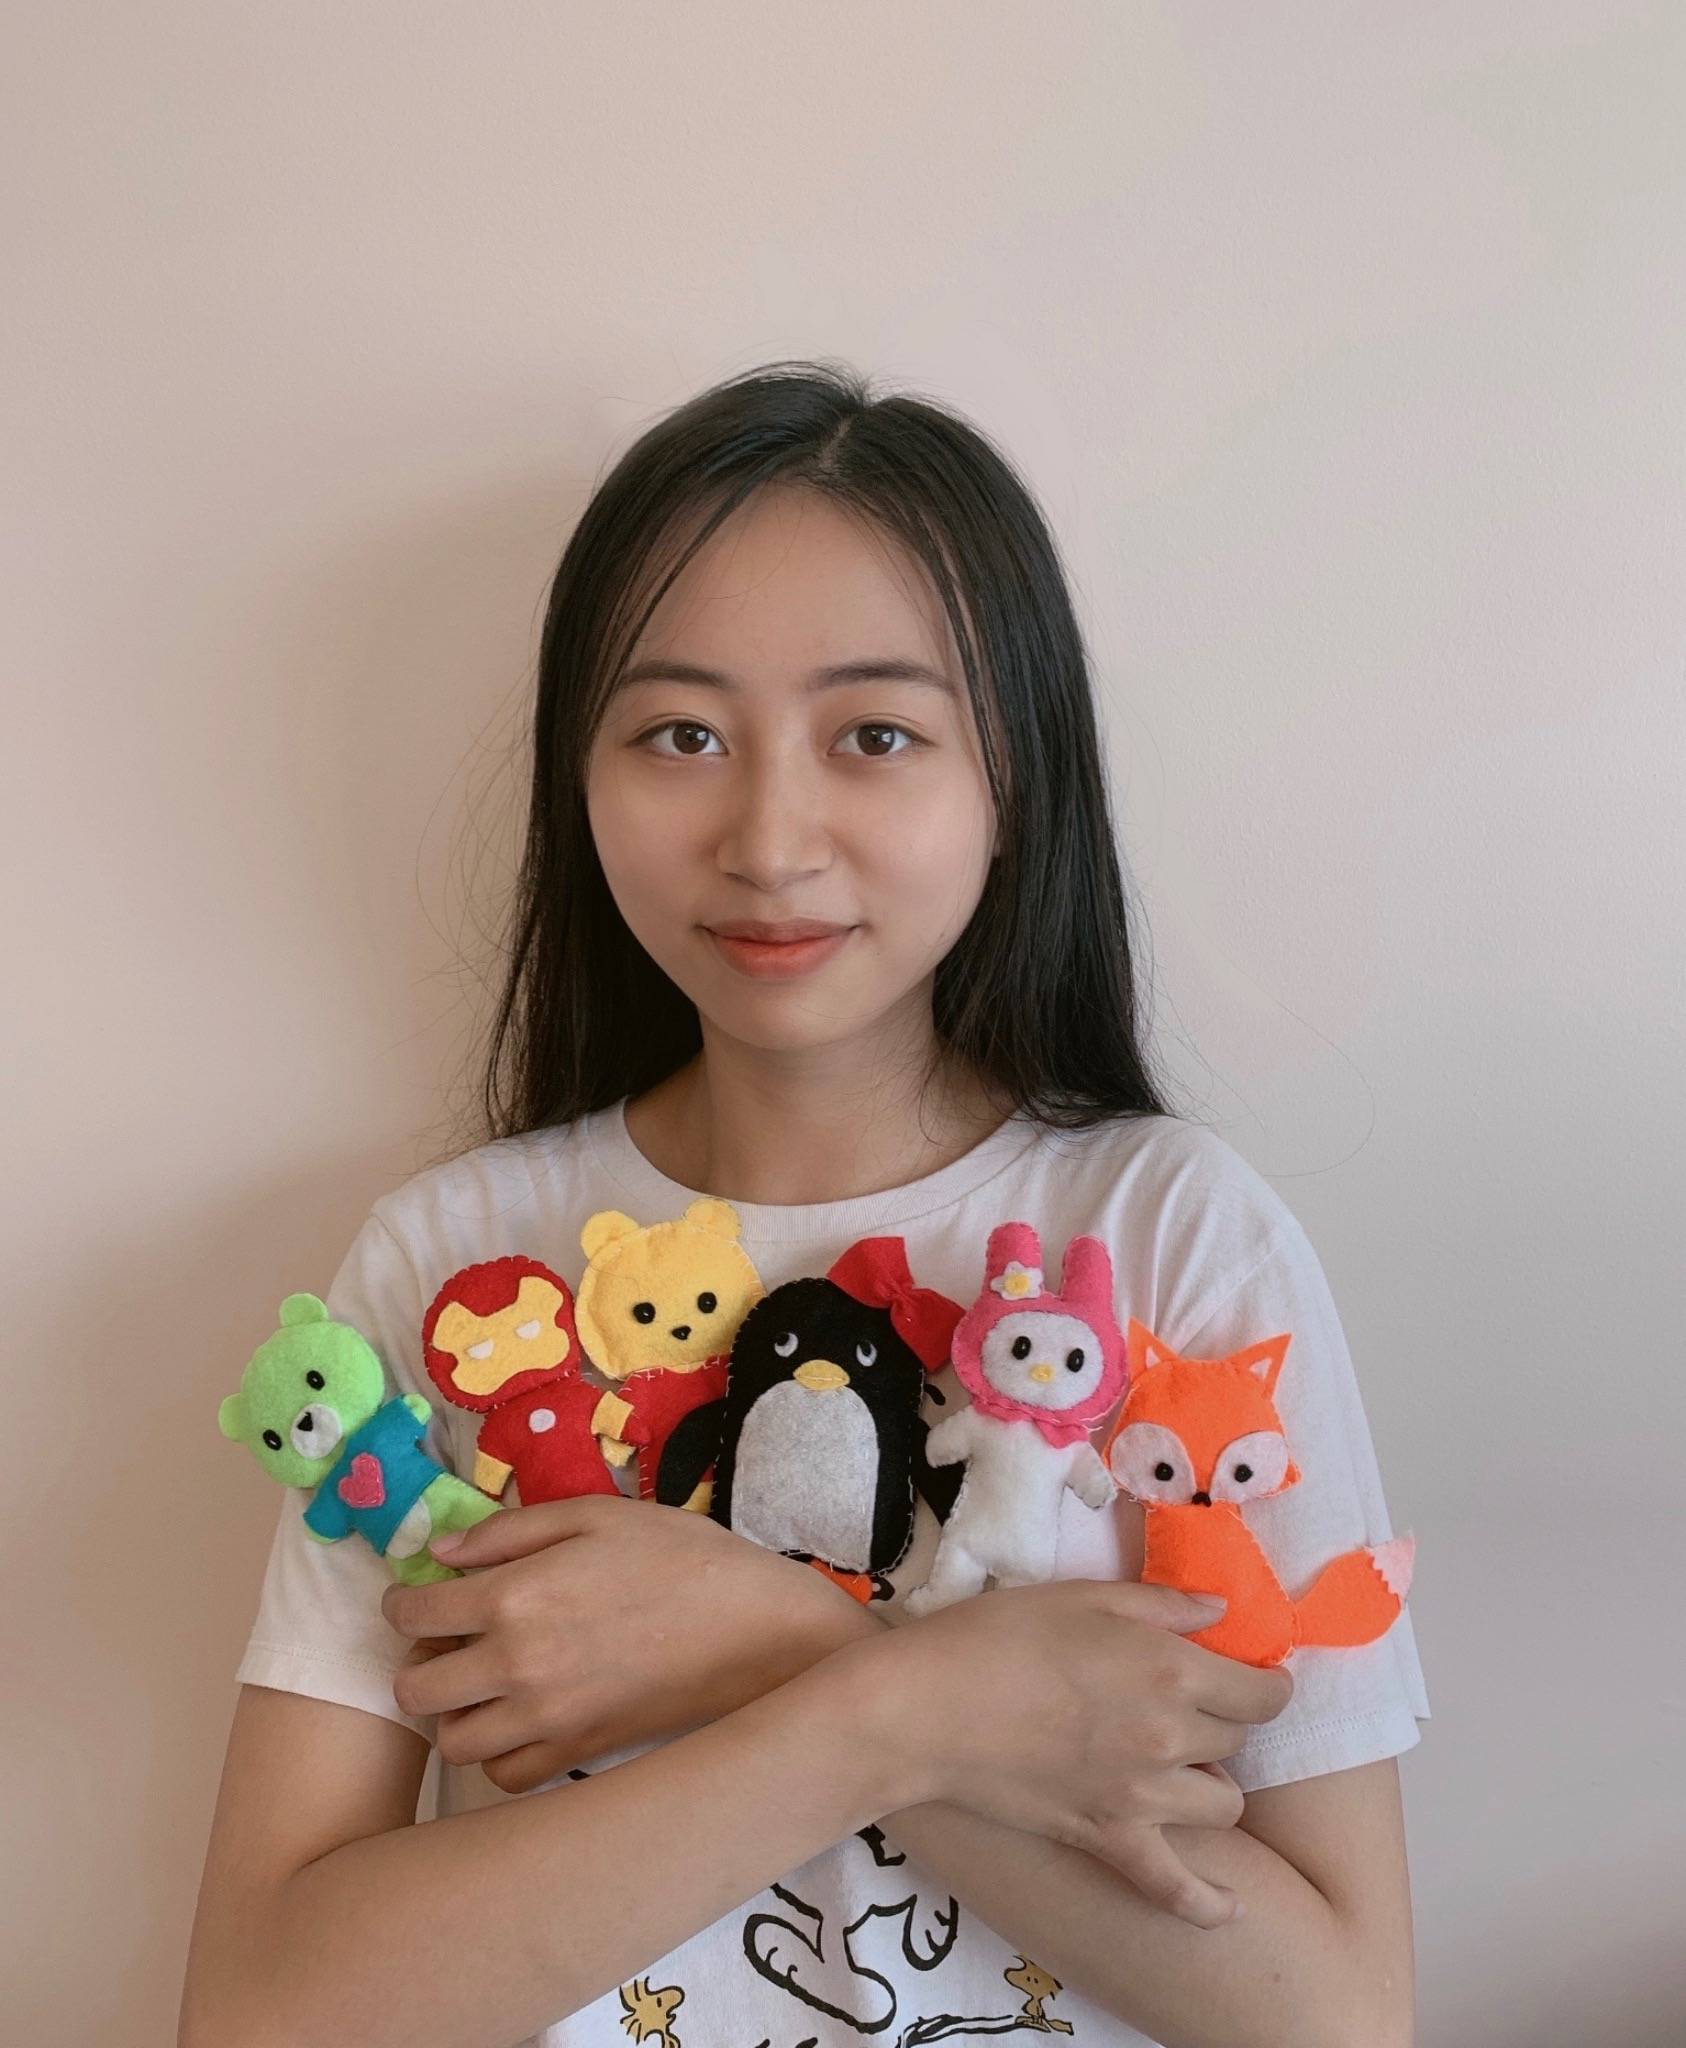 R.E. Mountain Secondary student Alice He, 17, (pictured) has started a summer project with fellow classmate Amy Yim, 17, to sew handmade felt toys to donate to kids at Langley Memorial Hospital in September. (Special to Langley Advance Times)